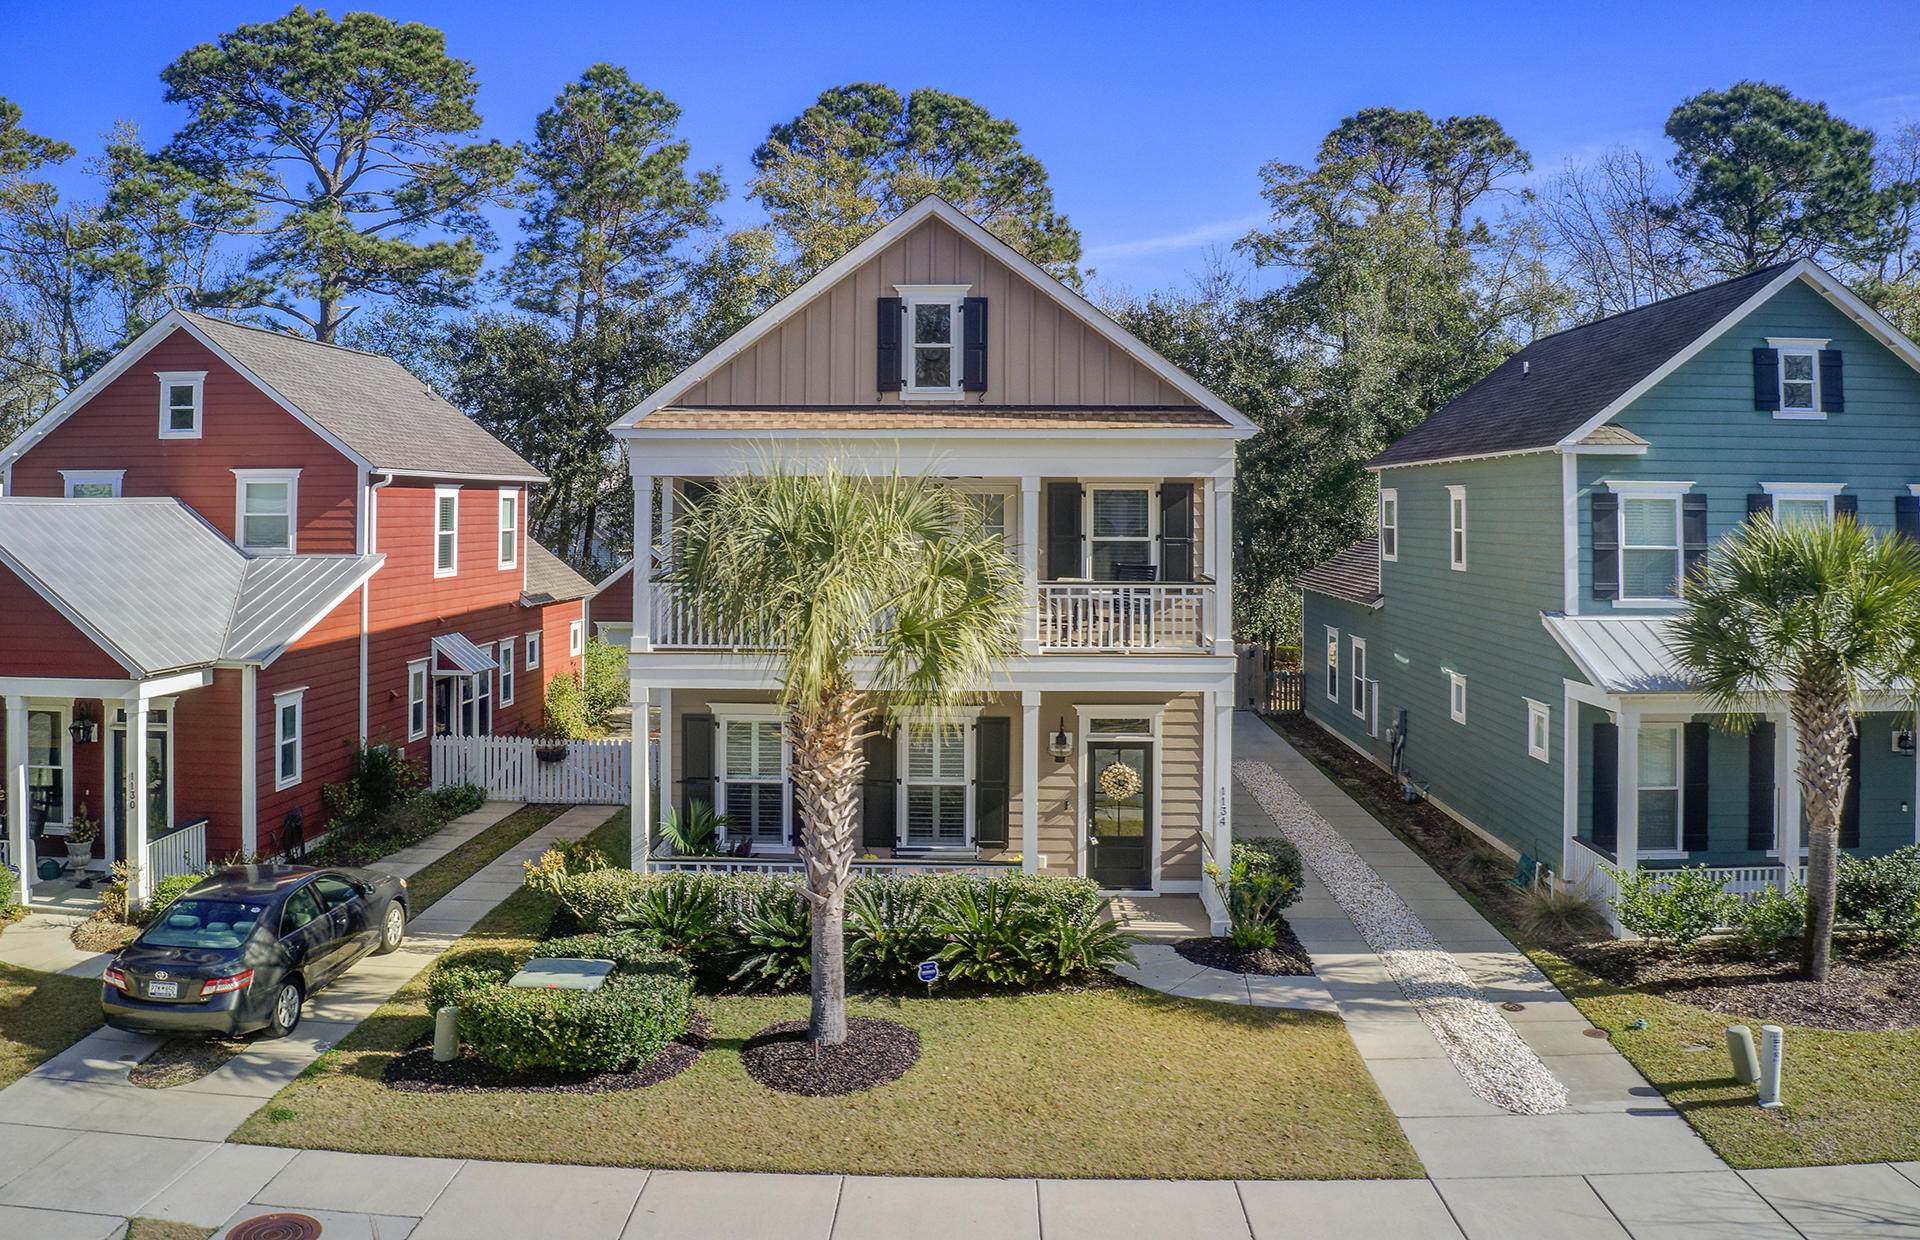 Wexford Park Homes For Sale - 1134 Wexford, Mount Pleasant, SC - 0